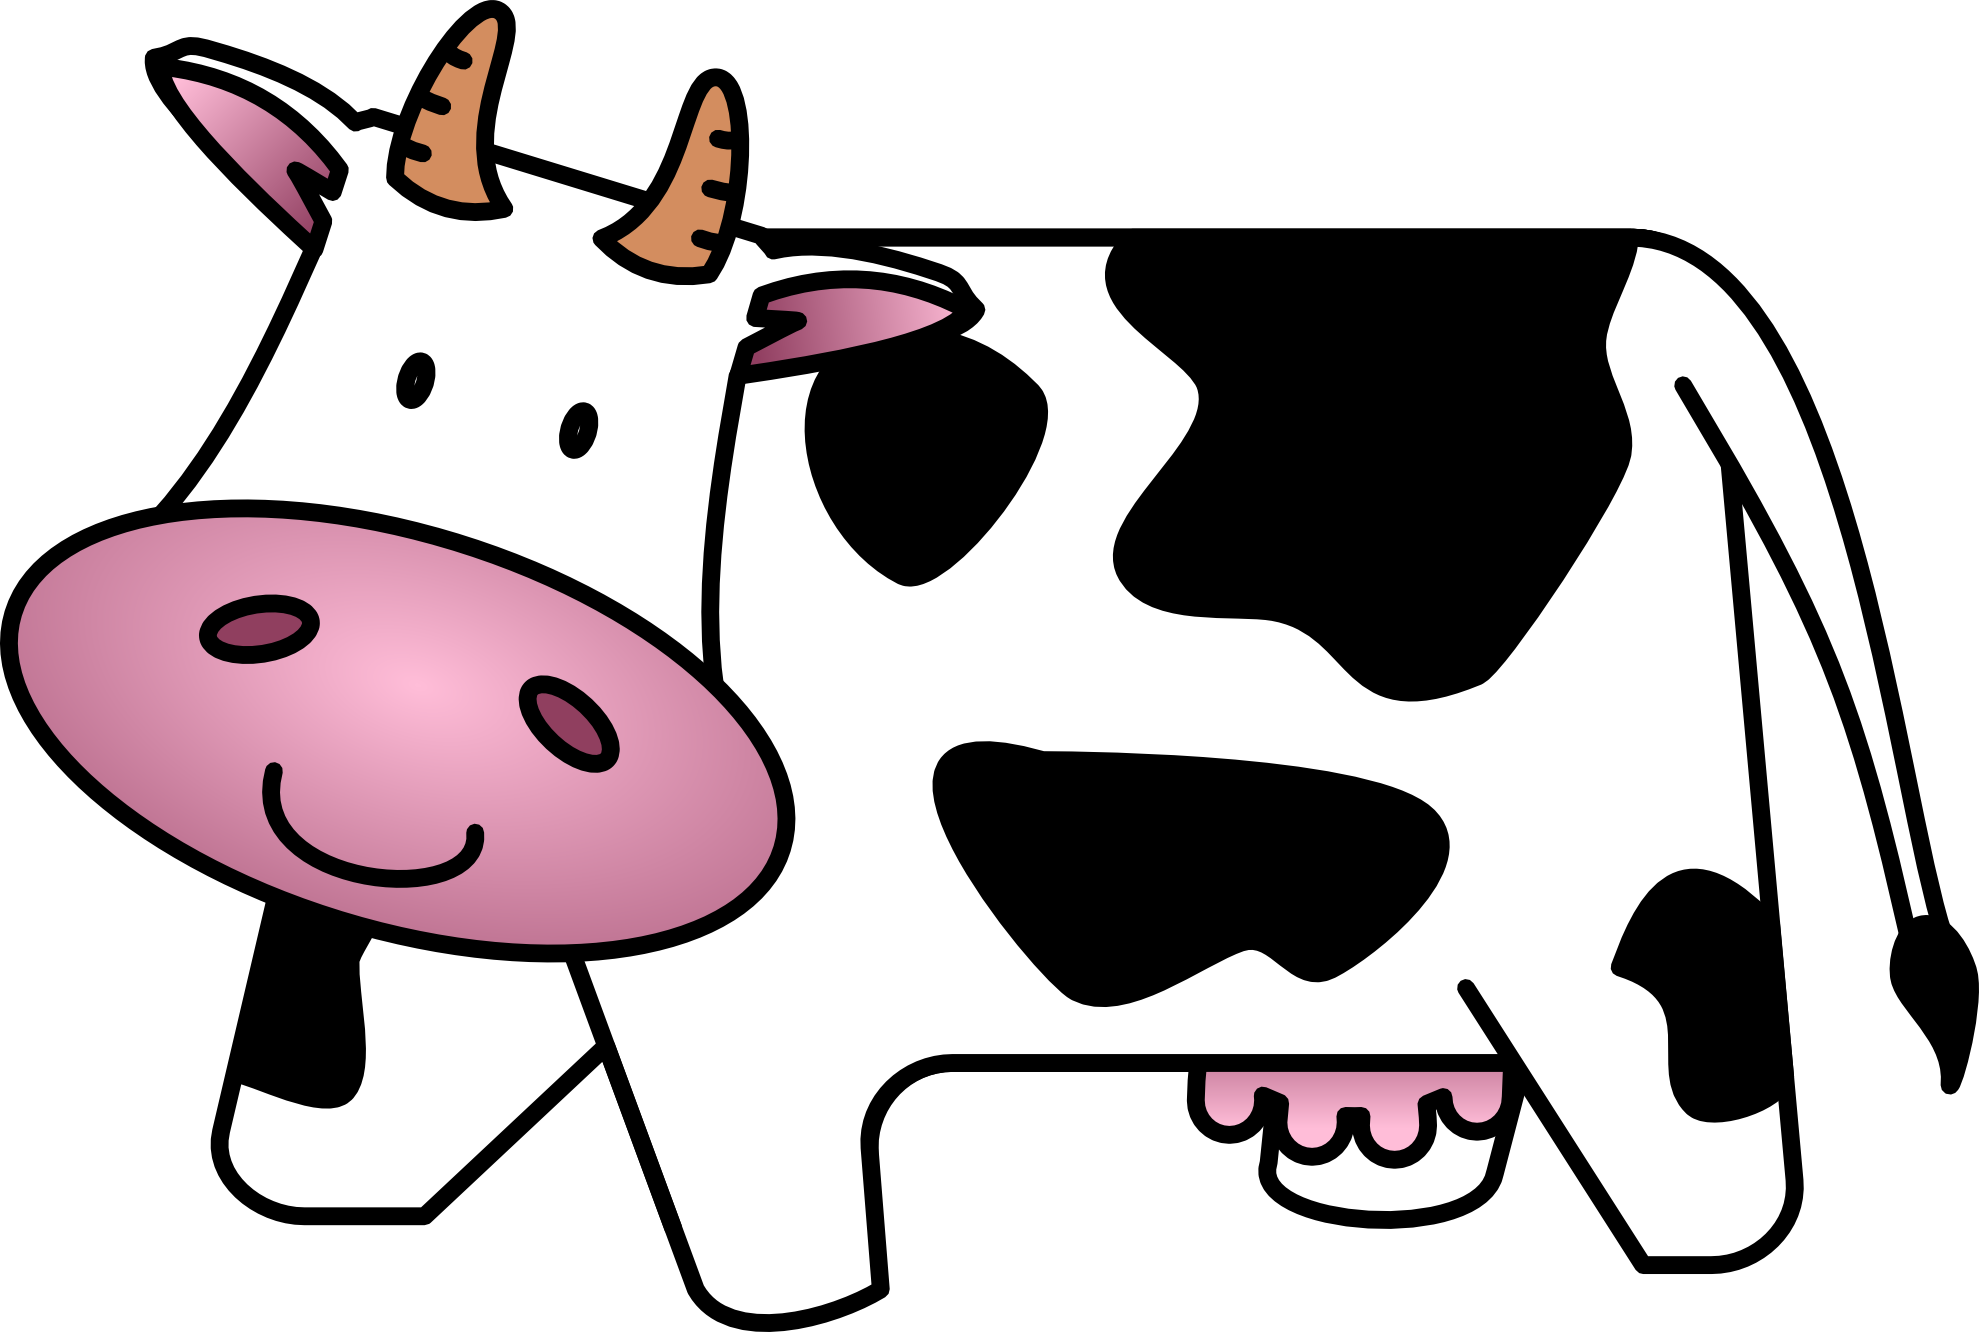 Cow clip art transparent background. Clipart with panda free